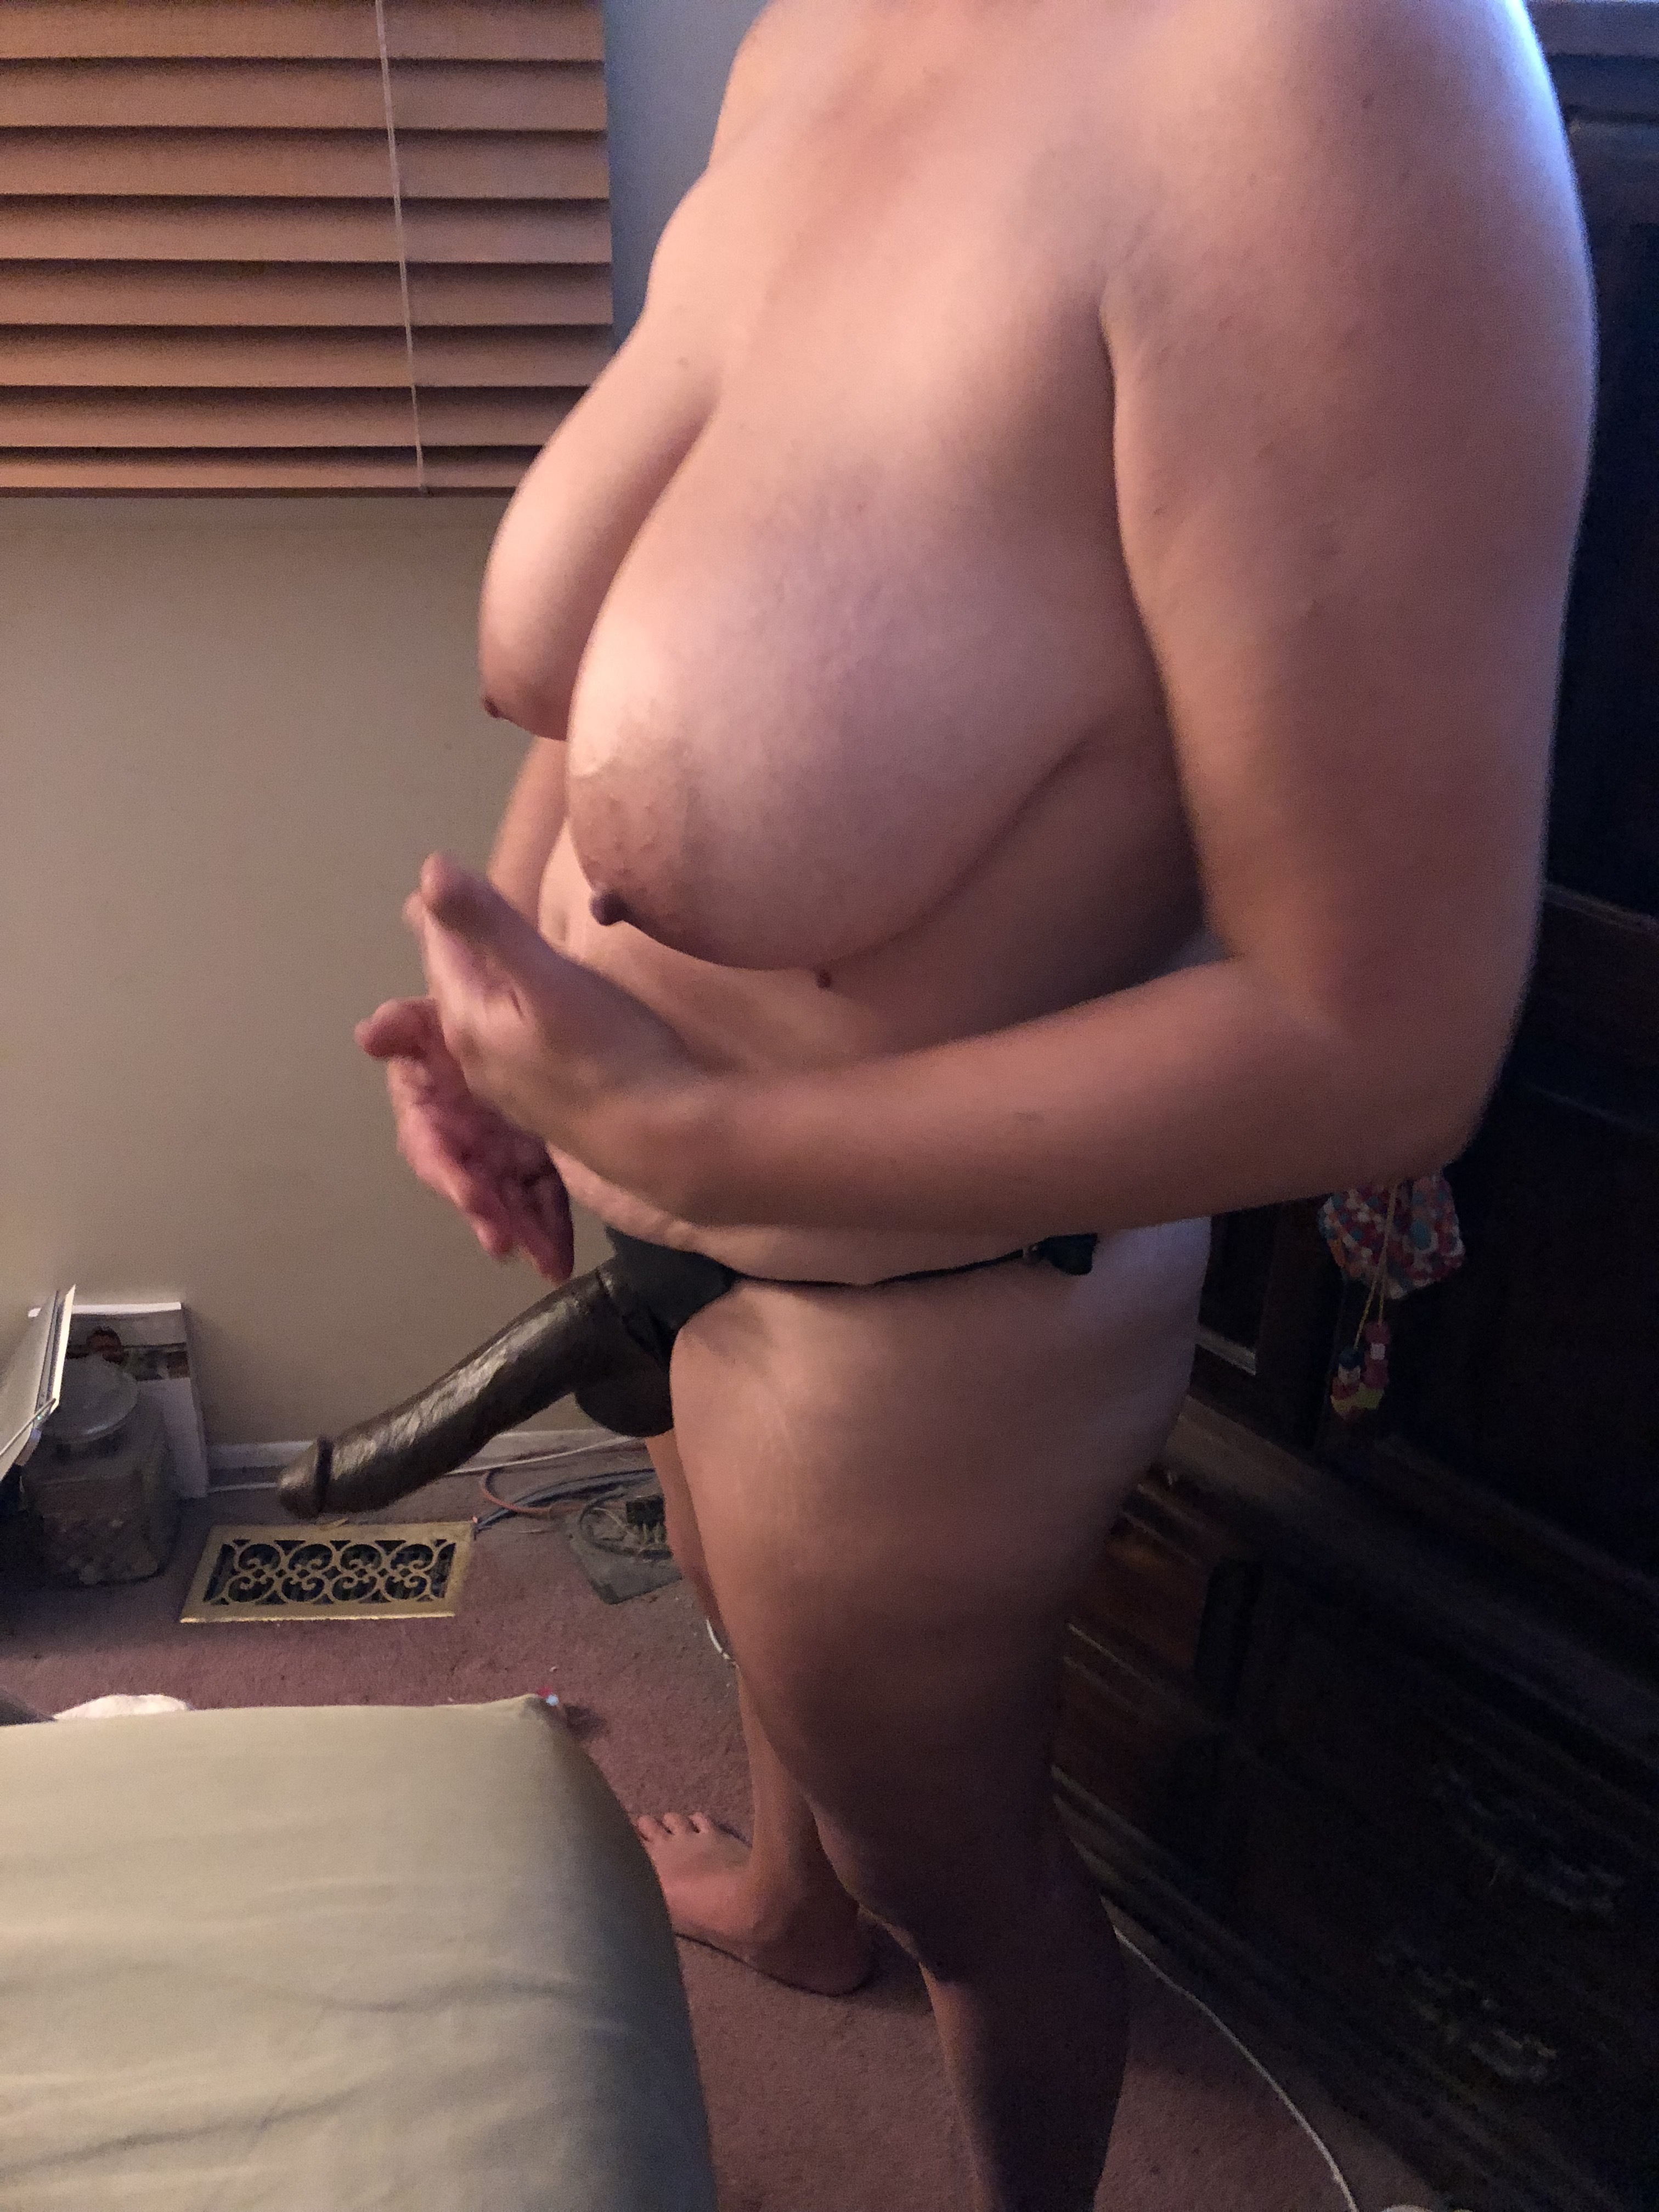 Cum load and wife strapon husband | Sex photo)